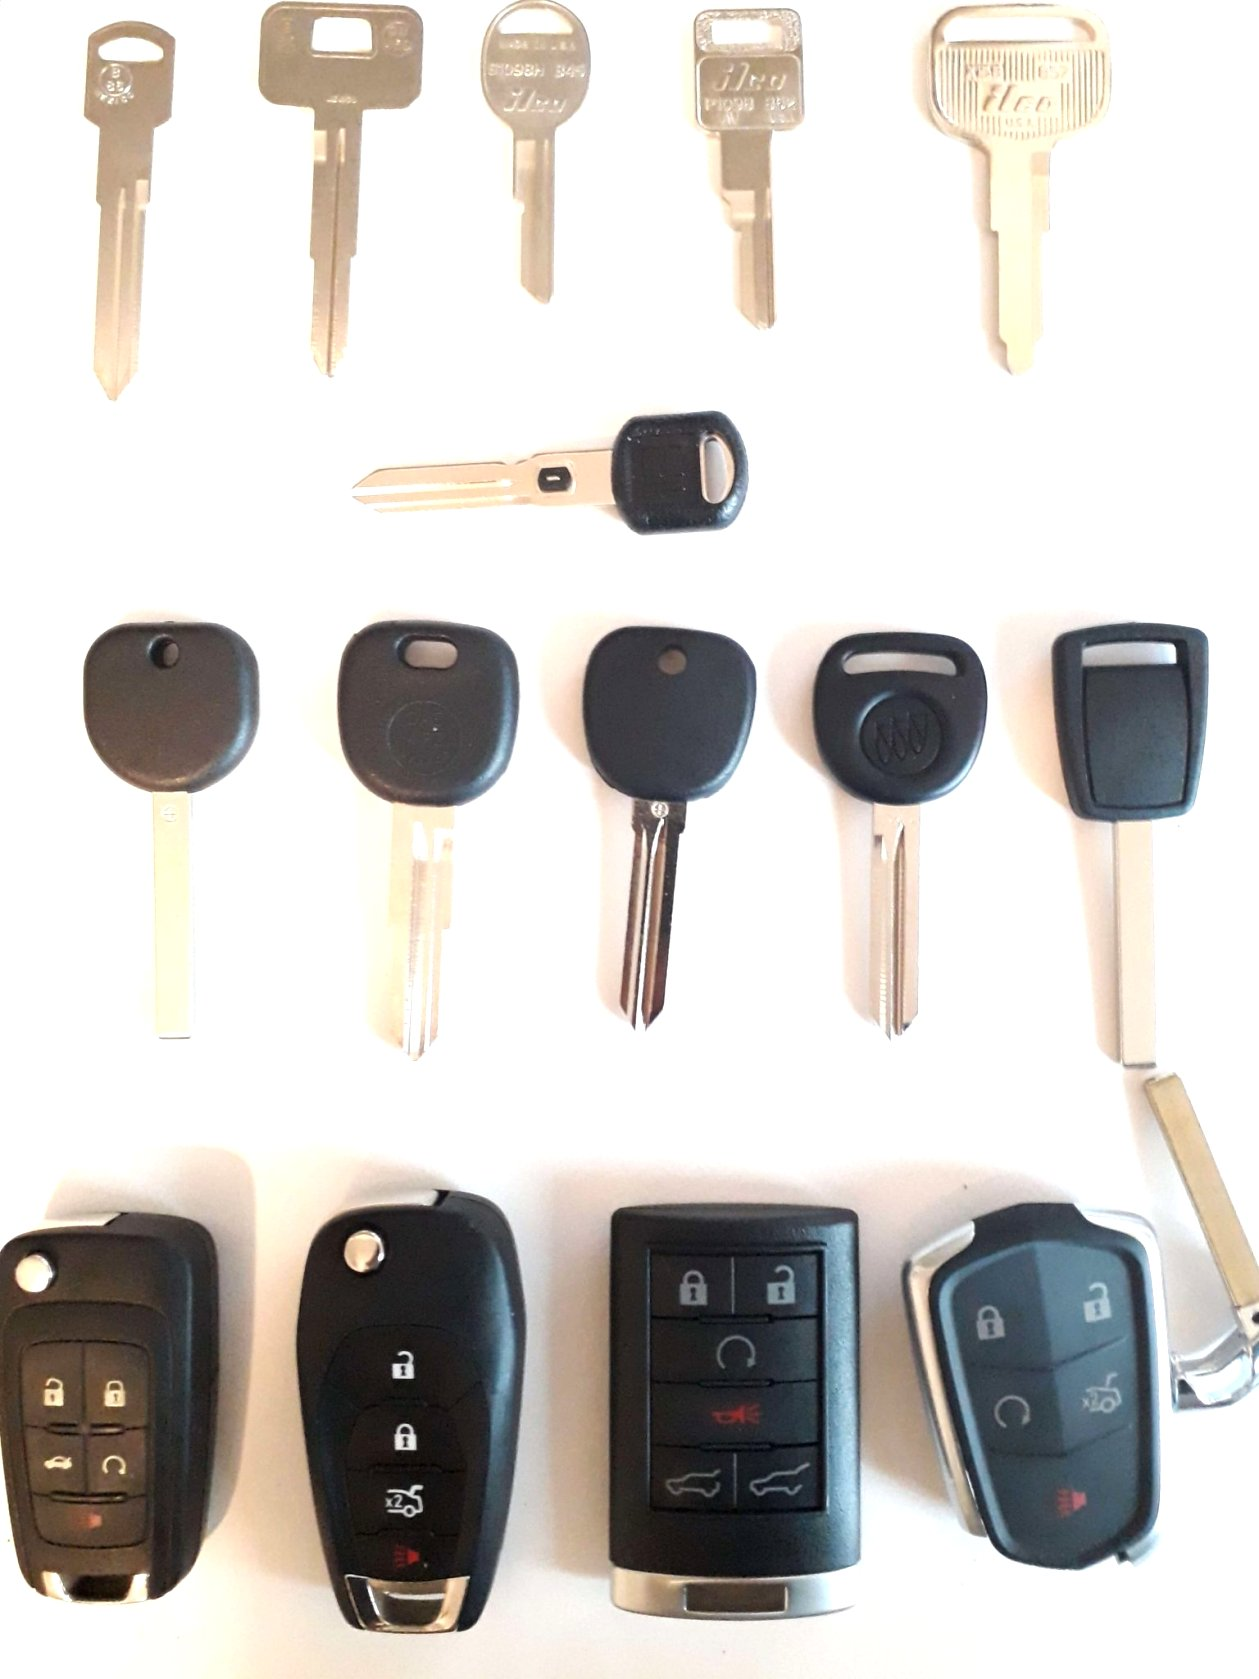 2020 GMC key fob battery replacement Review and Release date